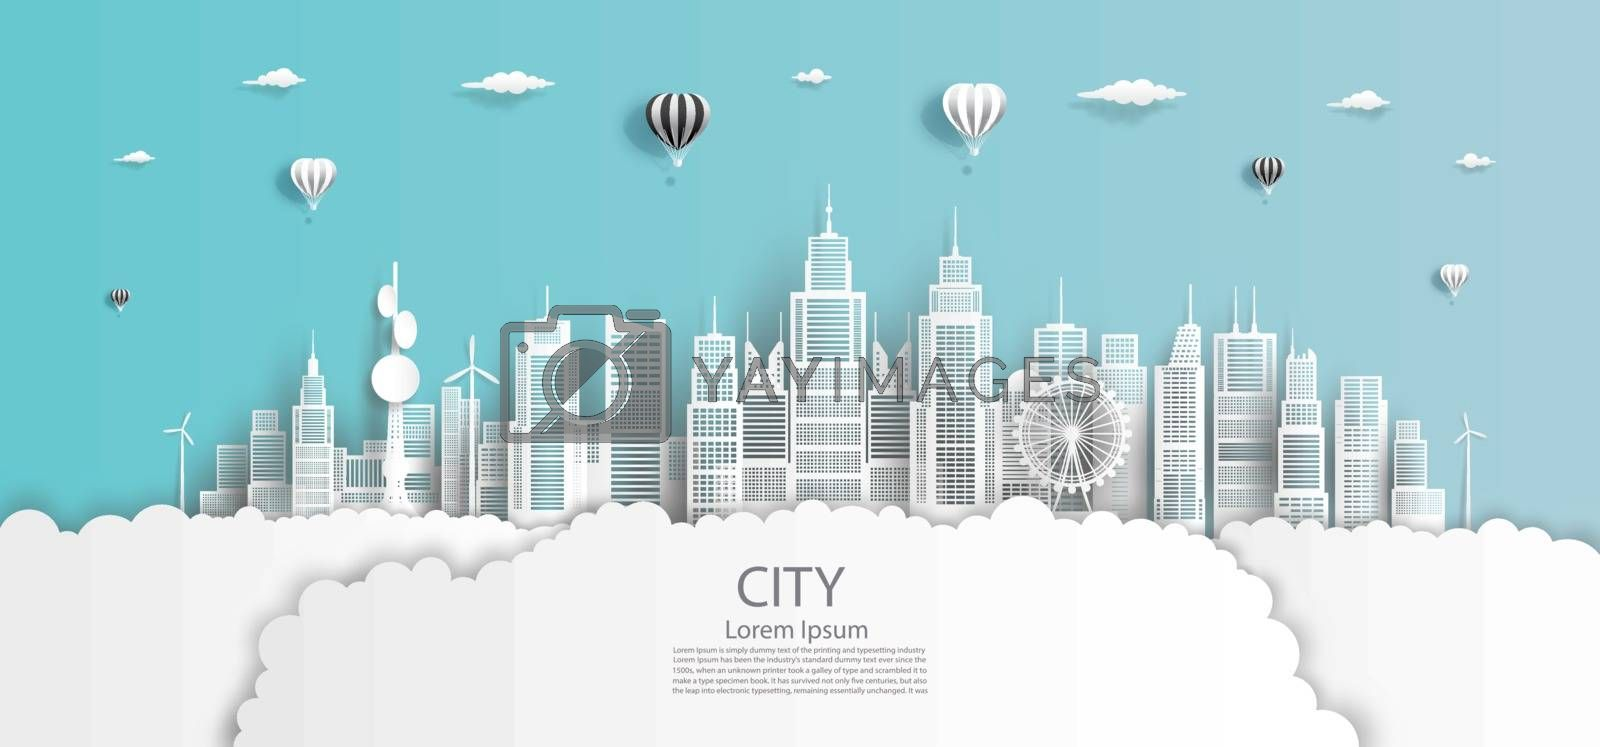 Modern economic city clean in downtown skyscraper background, Eco cityscape building futuristic skyline panorama view, Vector illustration design network communication in city on blue background.